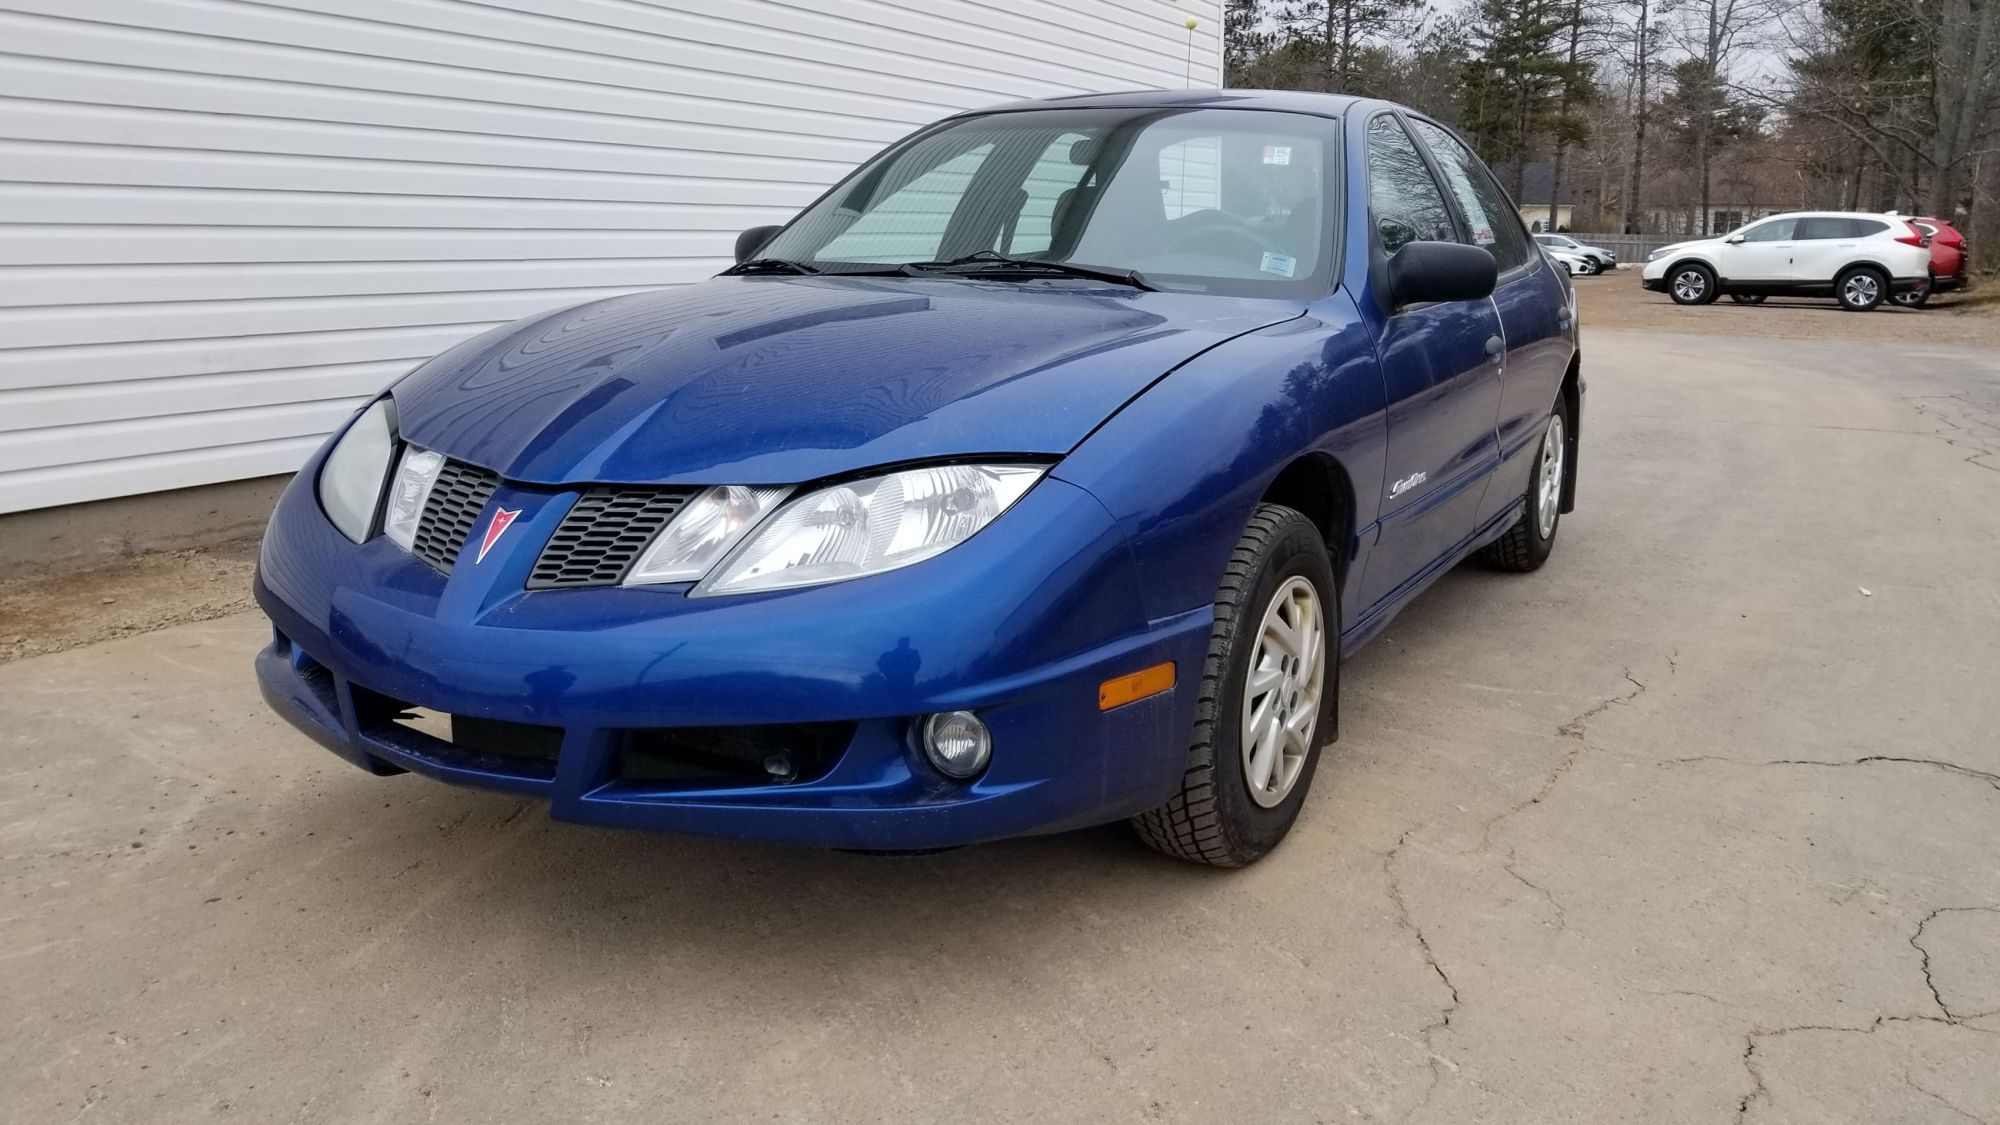 hight resolution of used 2003 pontiac sunfire in kentville used inventory kings county honda in kentville nova scotia